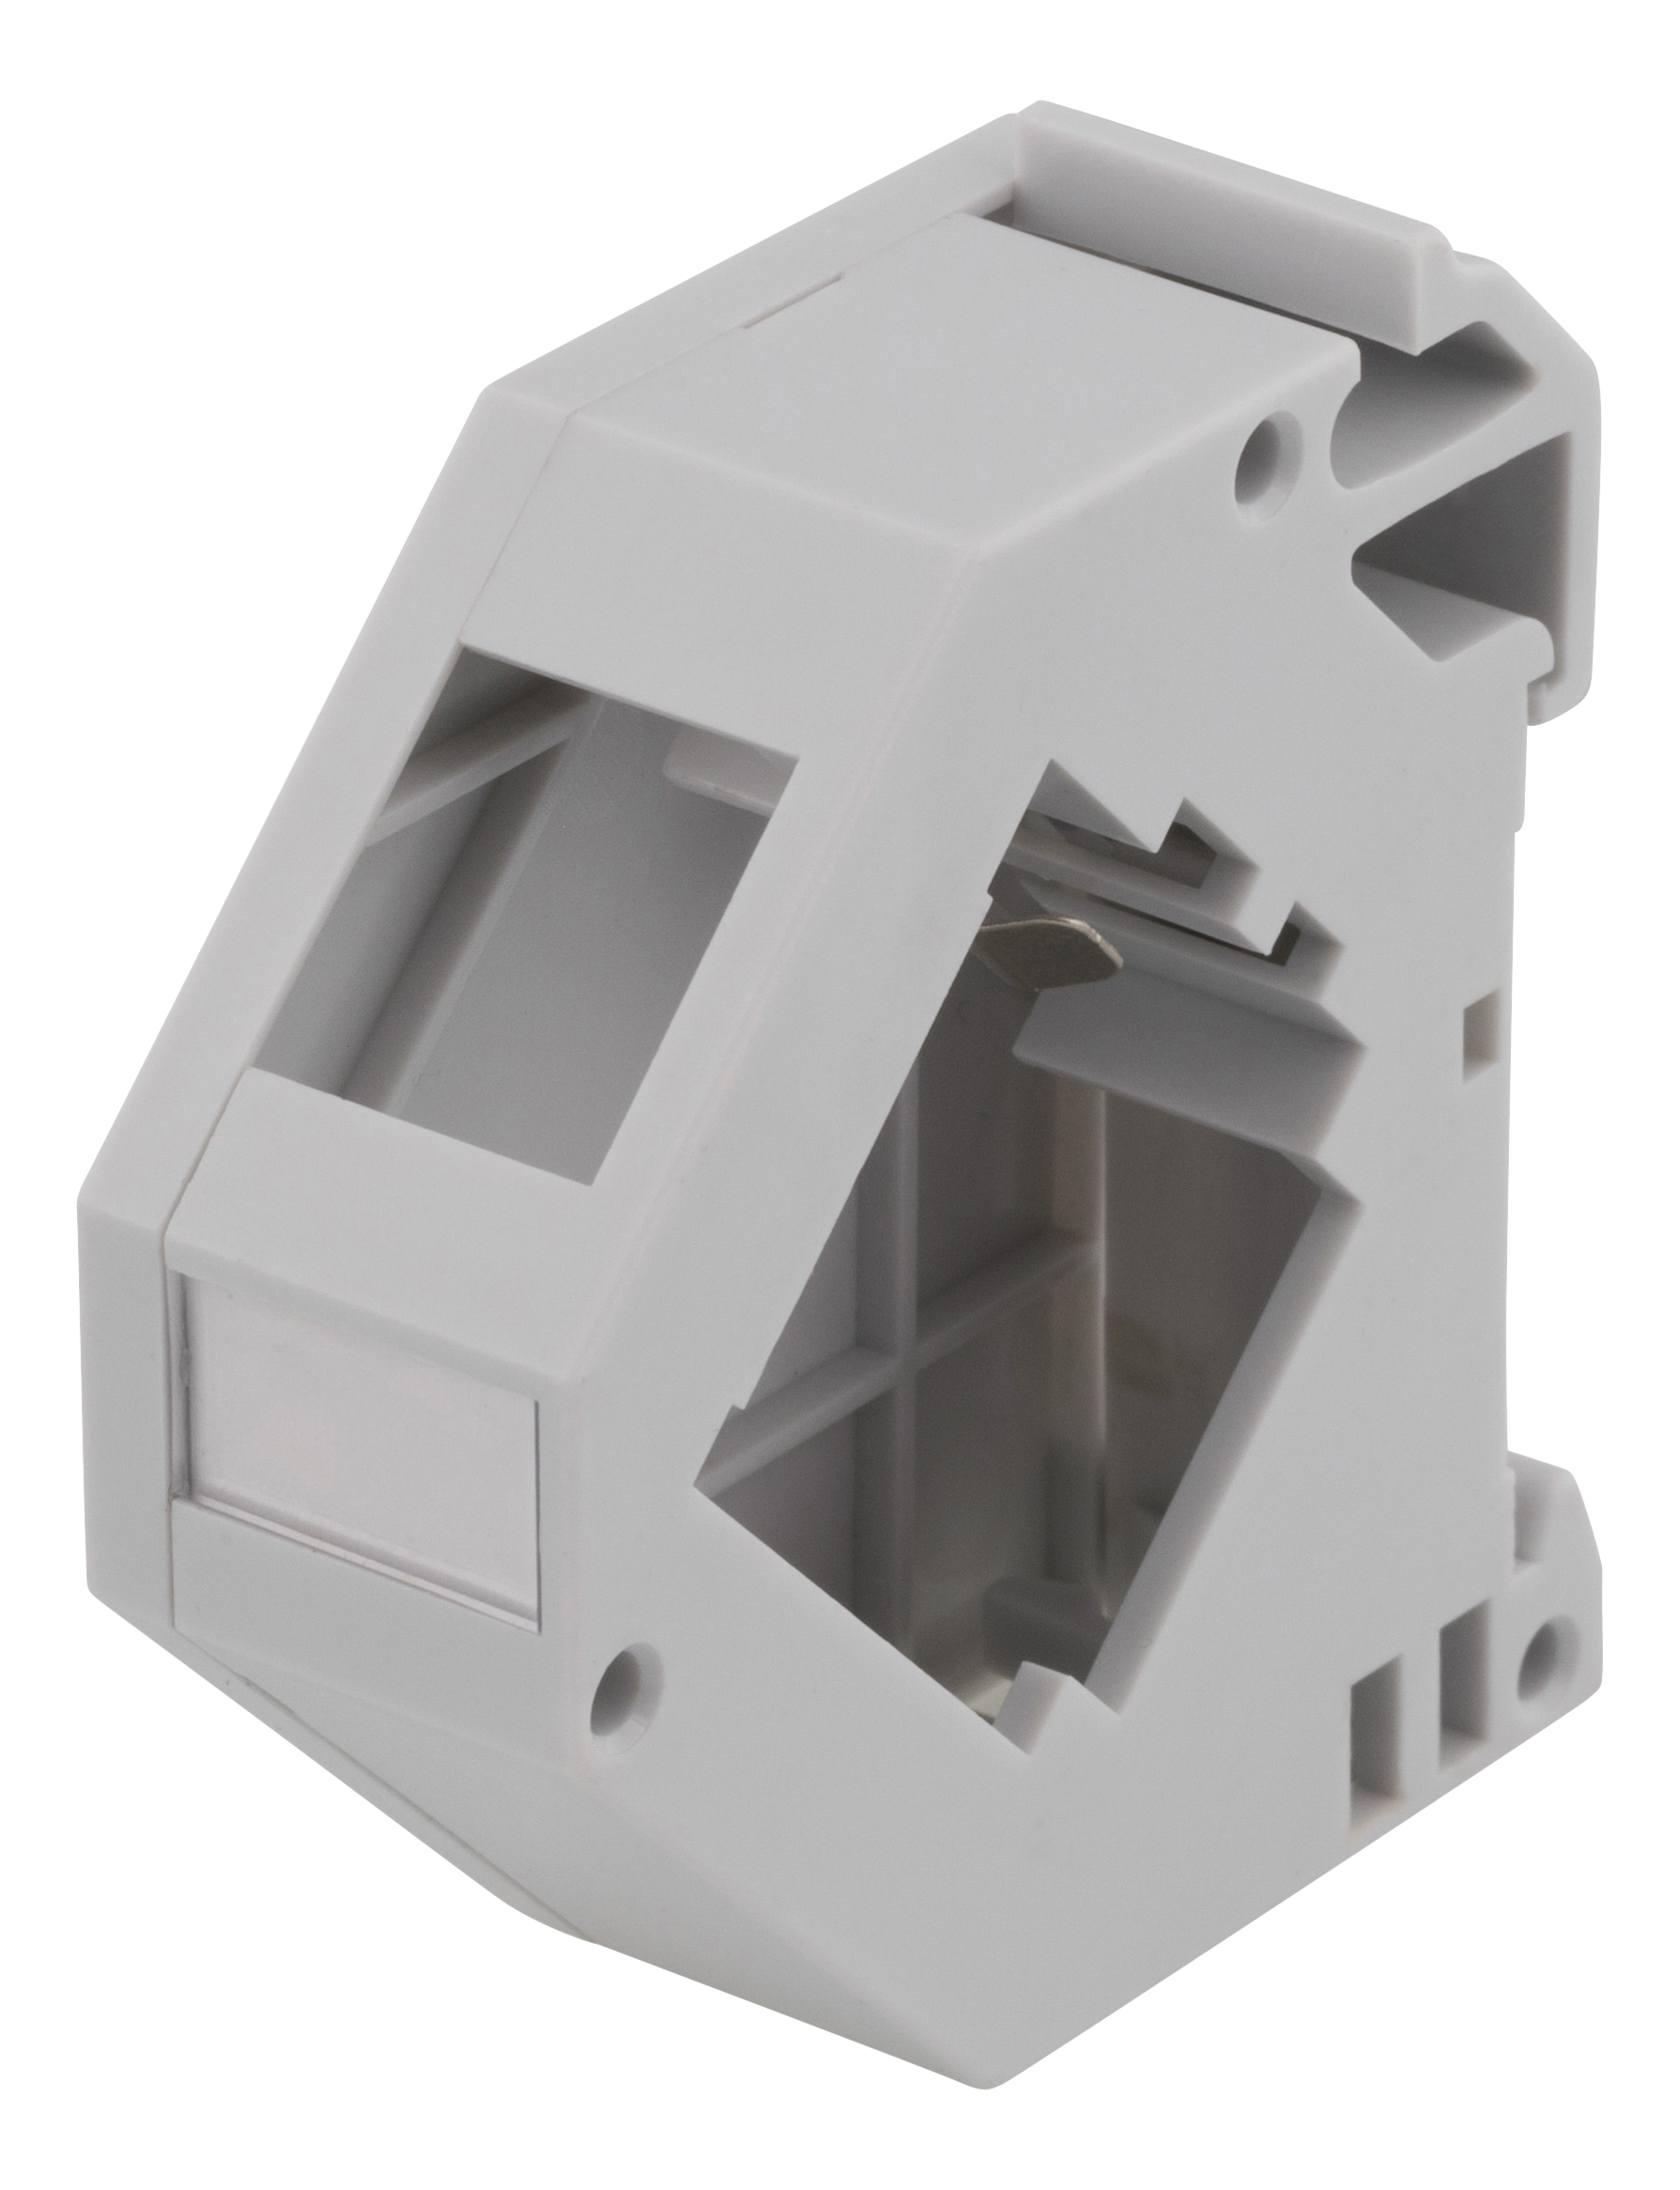 Deltaco Keystone mounting for DIN rail, shielded, label, gray MD-122